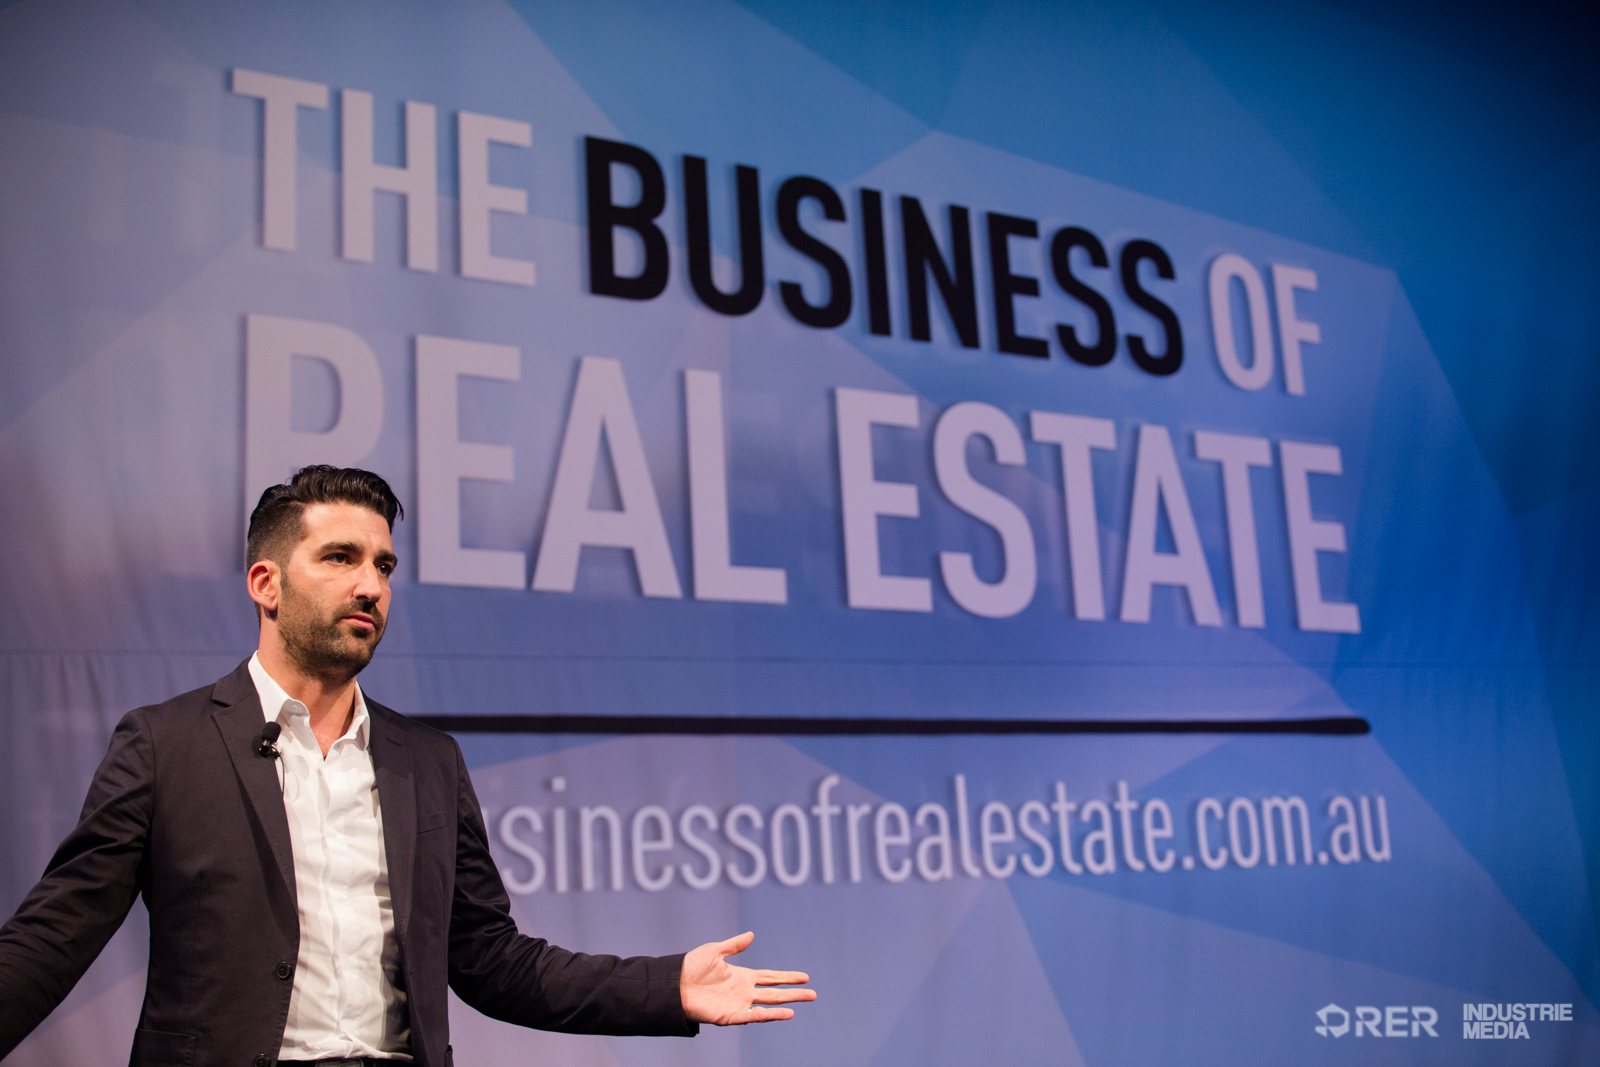 http://www.thebusinessofrealestate.com.au/wp-content/uploads/2016/09/RER_BUSINESS_OF_REAL_ESTATE_DAY_2-44.jpg